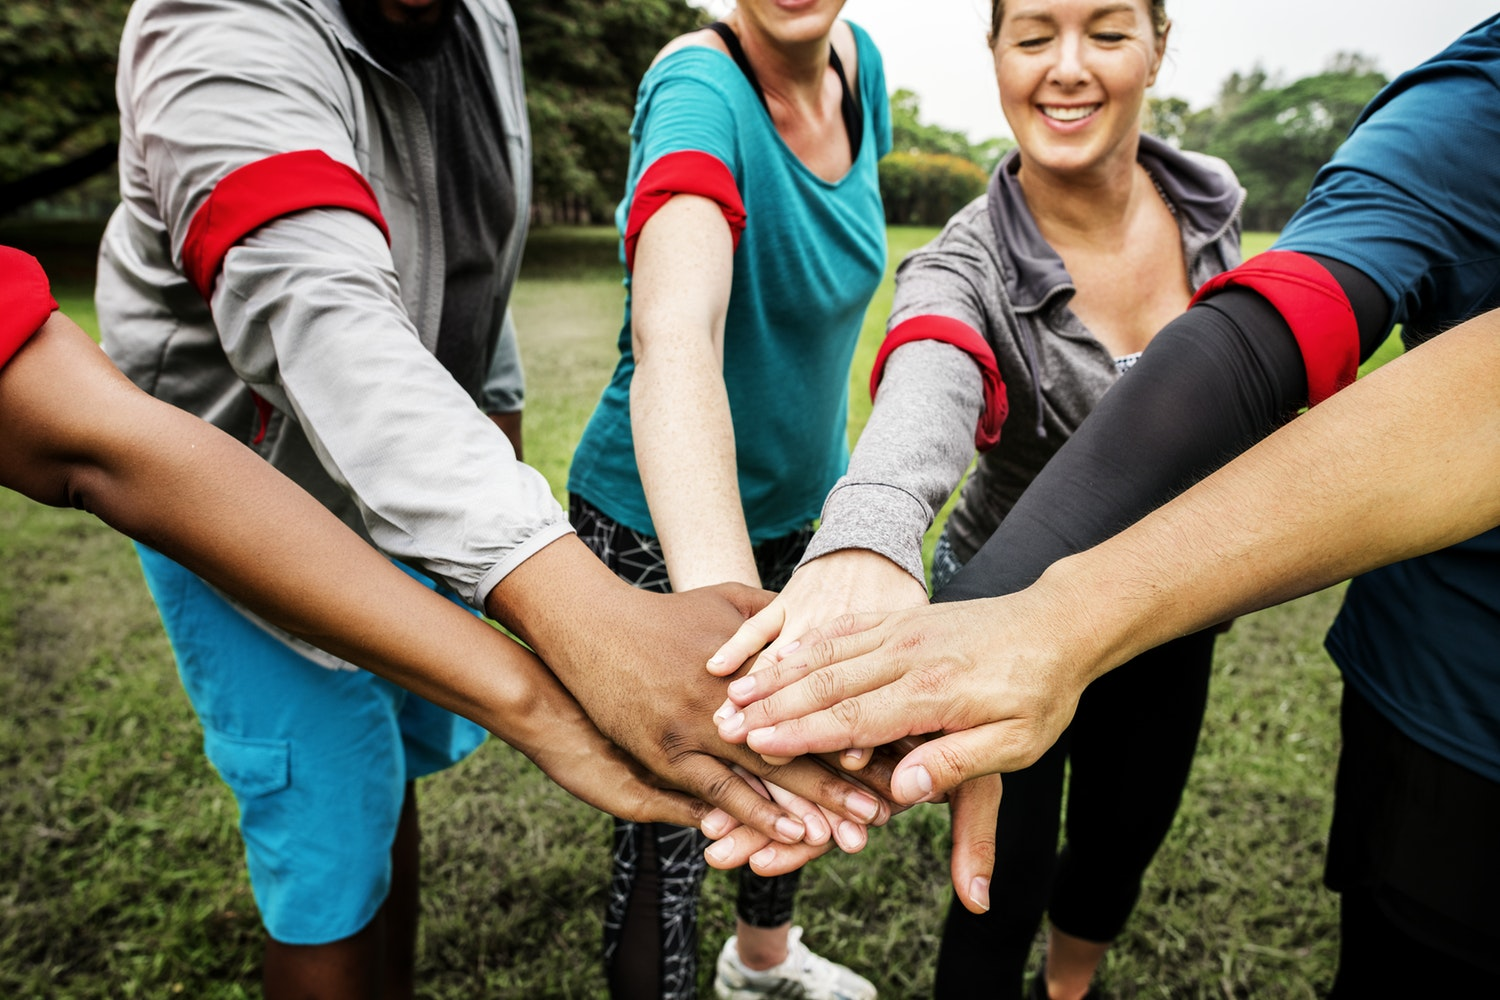 """WE GATHER TO ENJOY VITALITY FOR LIFE - Some studies suggest that engaging in social activities can lower one's risk for Alzheimer's, cardiovascular disease, high blood pressure, certain cancers, and even rheumatoid arthritis. Social behavior is the """"ultimate antioxidant;"""" the more you engage, the younger you'll be."""